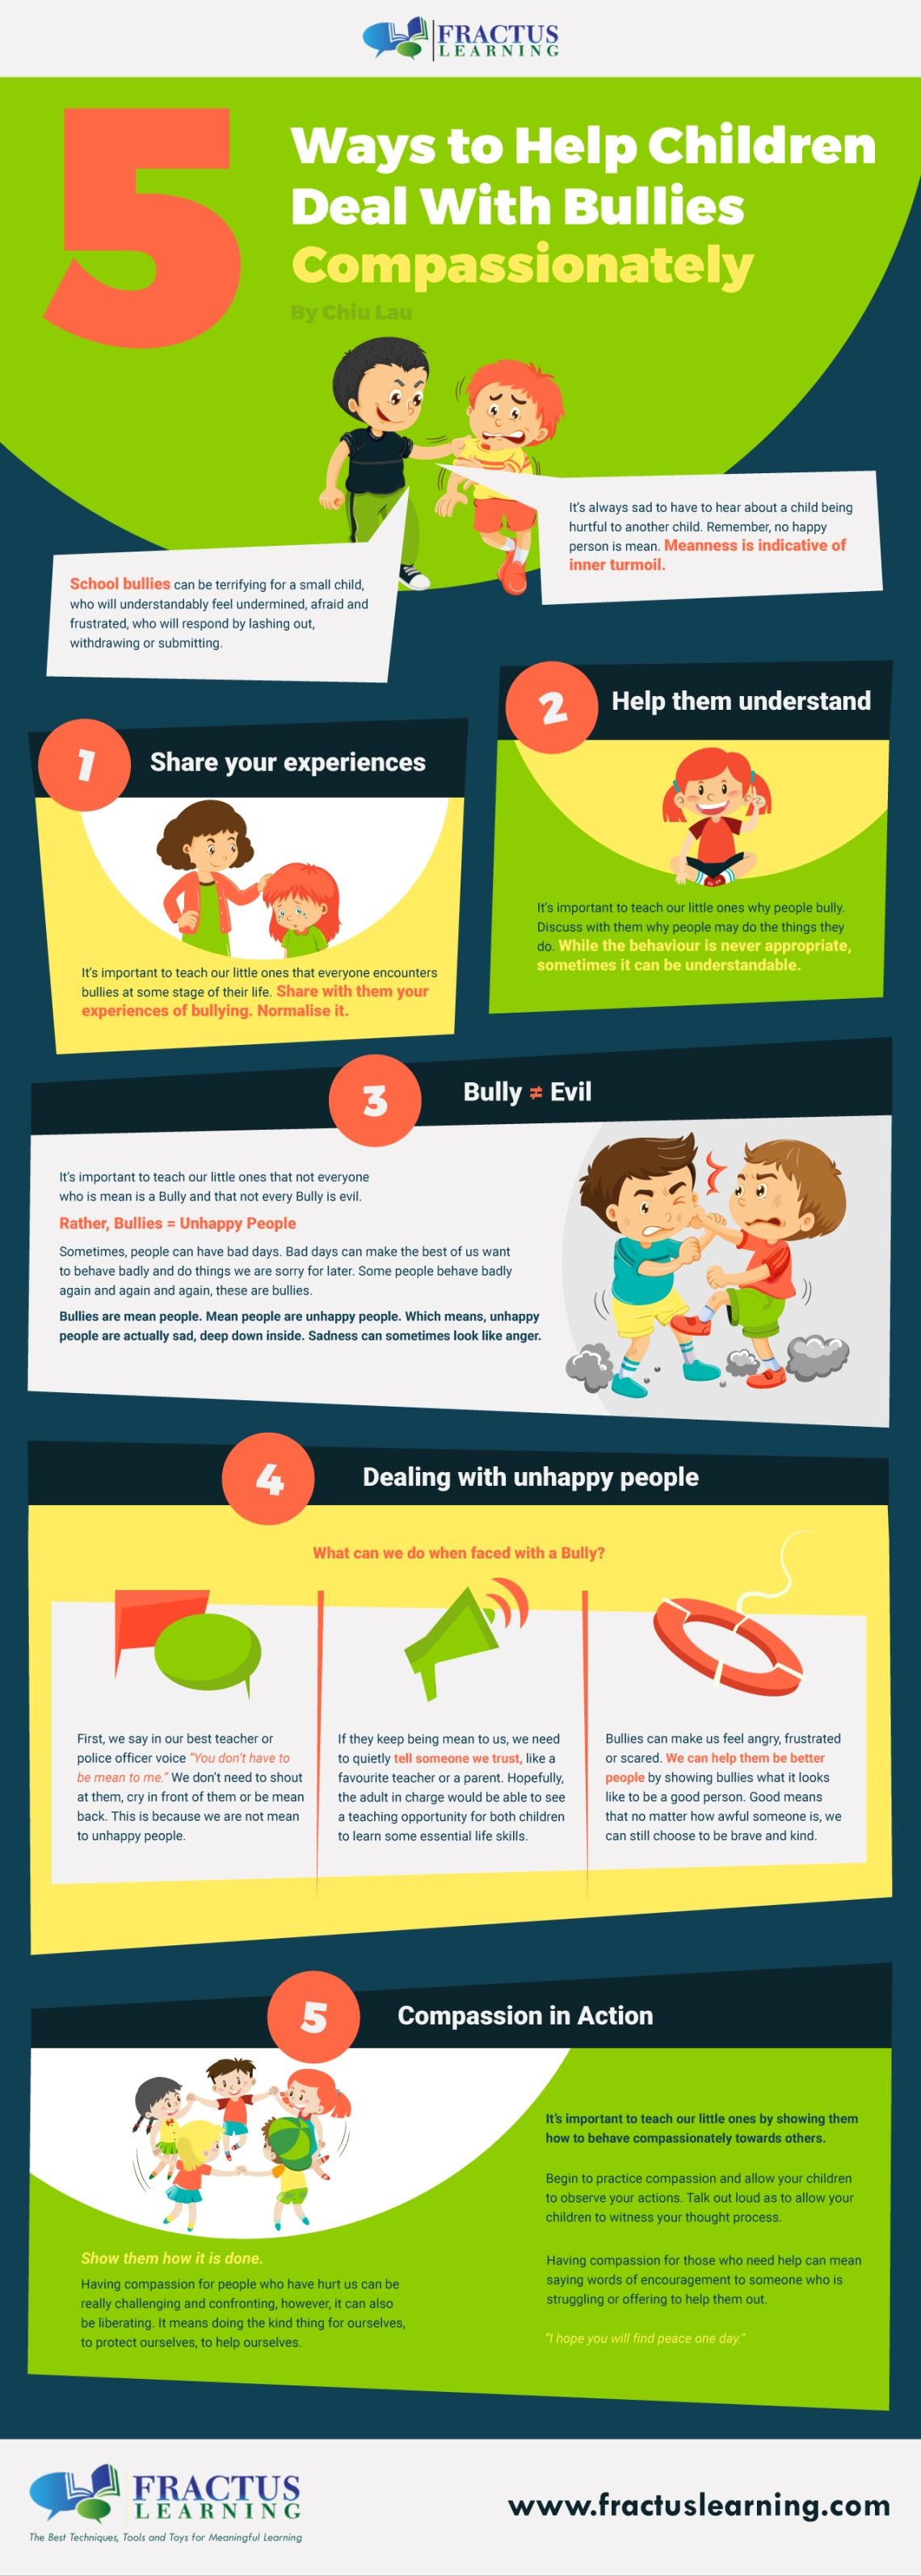 5 Ways to Help Children Deal with Bullies Compassionately